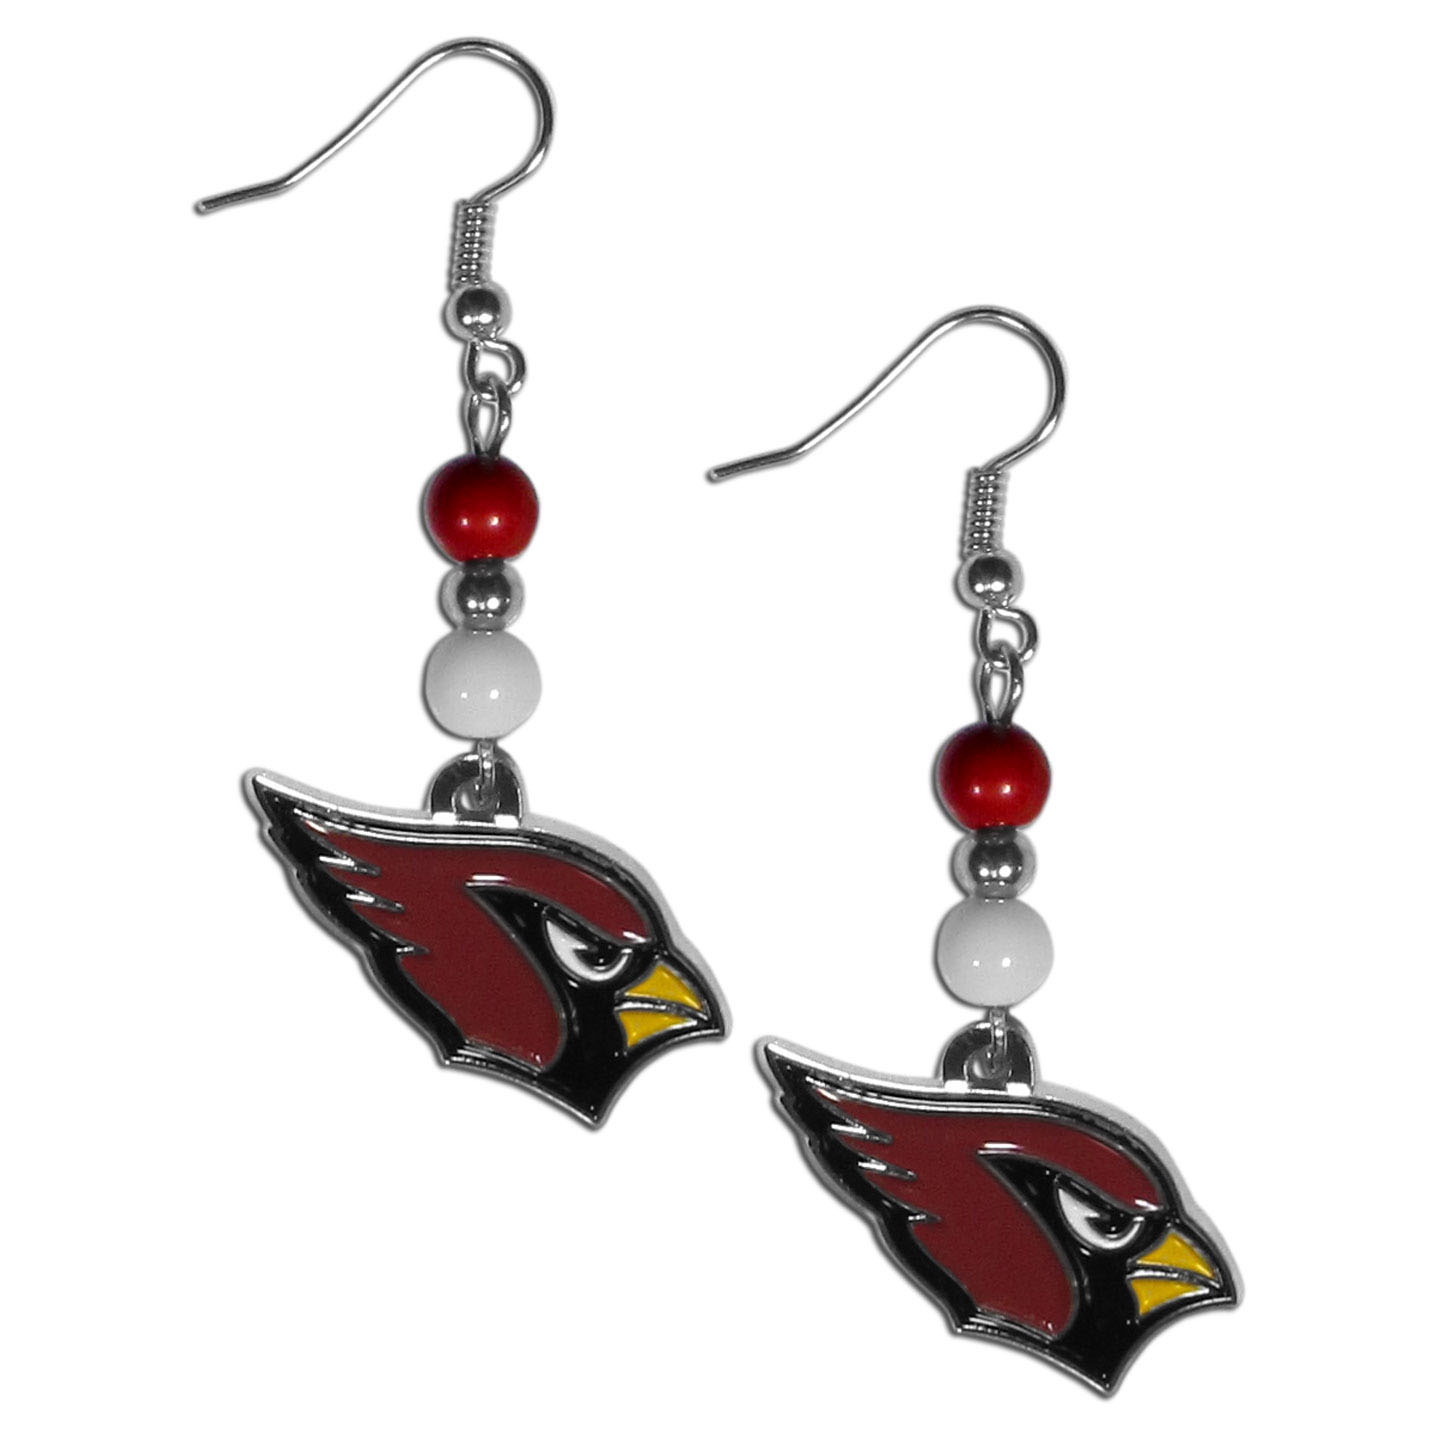 Arizona Cardinals Fan Bead Dangle Earrings - Love your team, show it off with our Arizona Cardinals bead dangle earrings! These super cute earrings hang approximately 2 inches and features 2 team colored beads and a high polish team charm. A must have for game day!